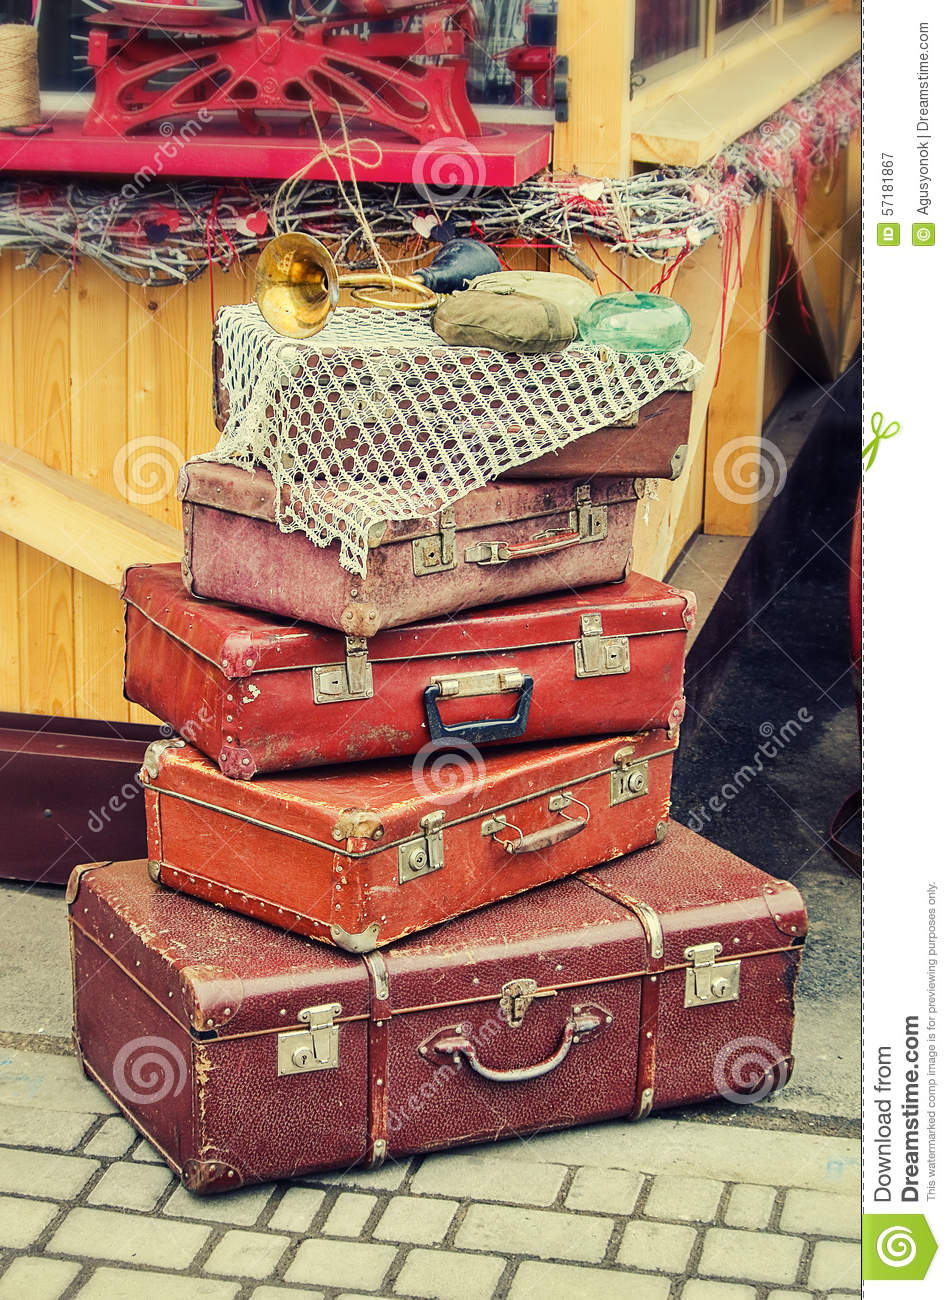 old retro objects antique a lot of luggage valise suitcases stock photo image 57181867. Black Bedroom Furniture Sets. Home Design Ideas